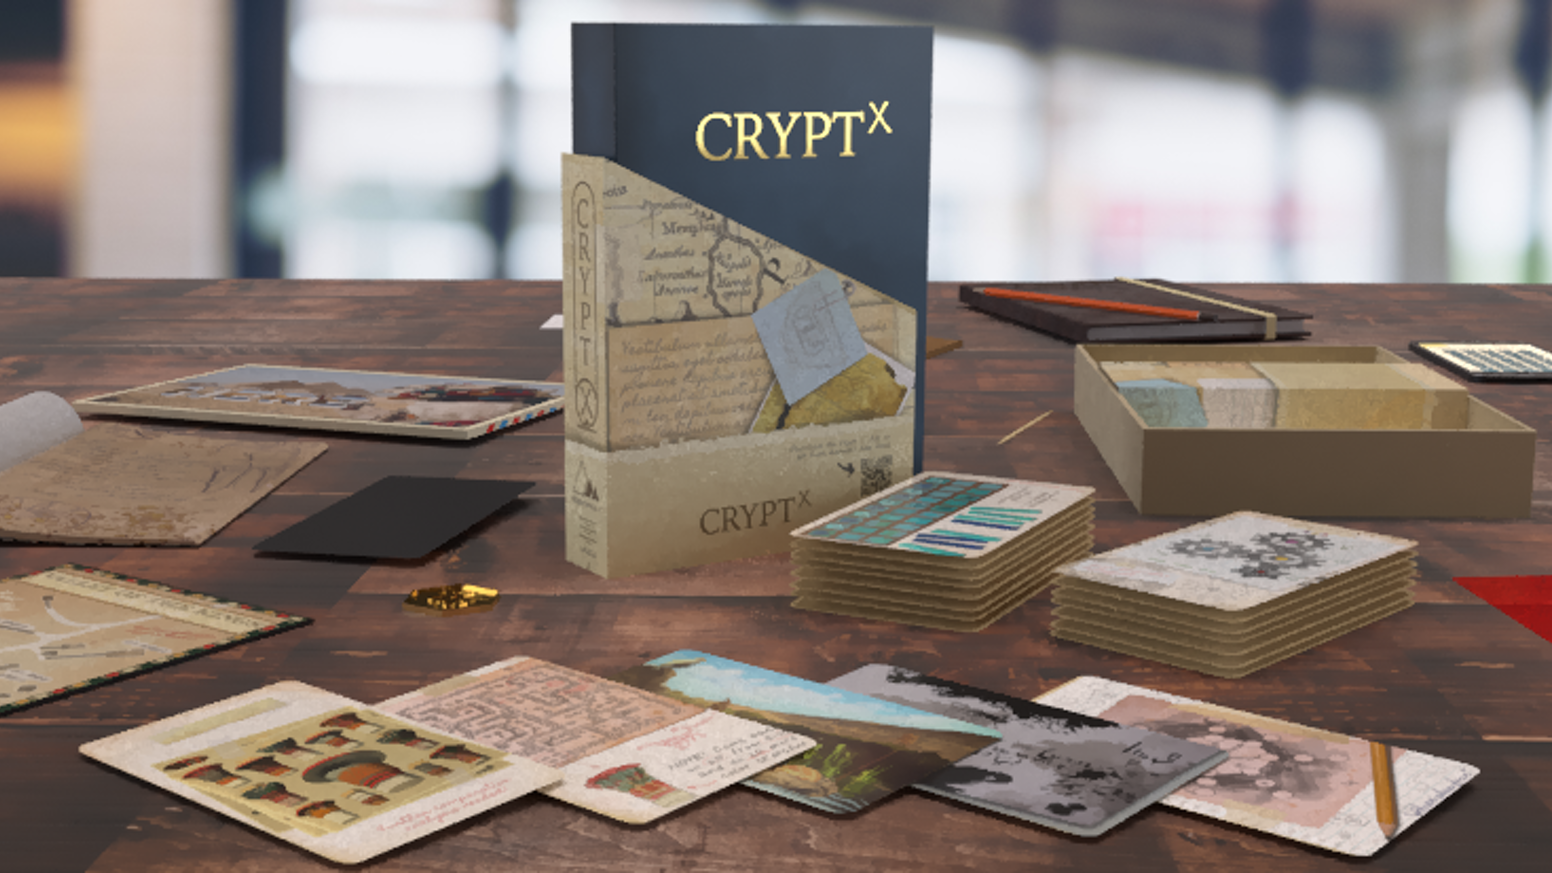 A missing archaeologist, an ancient tomb, a curious notebook. Can you uncover the secrets hidden deep within Crypt X?